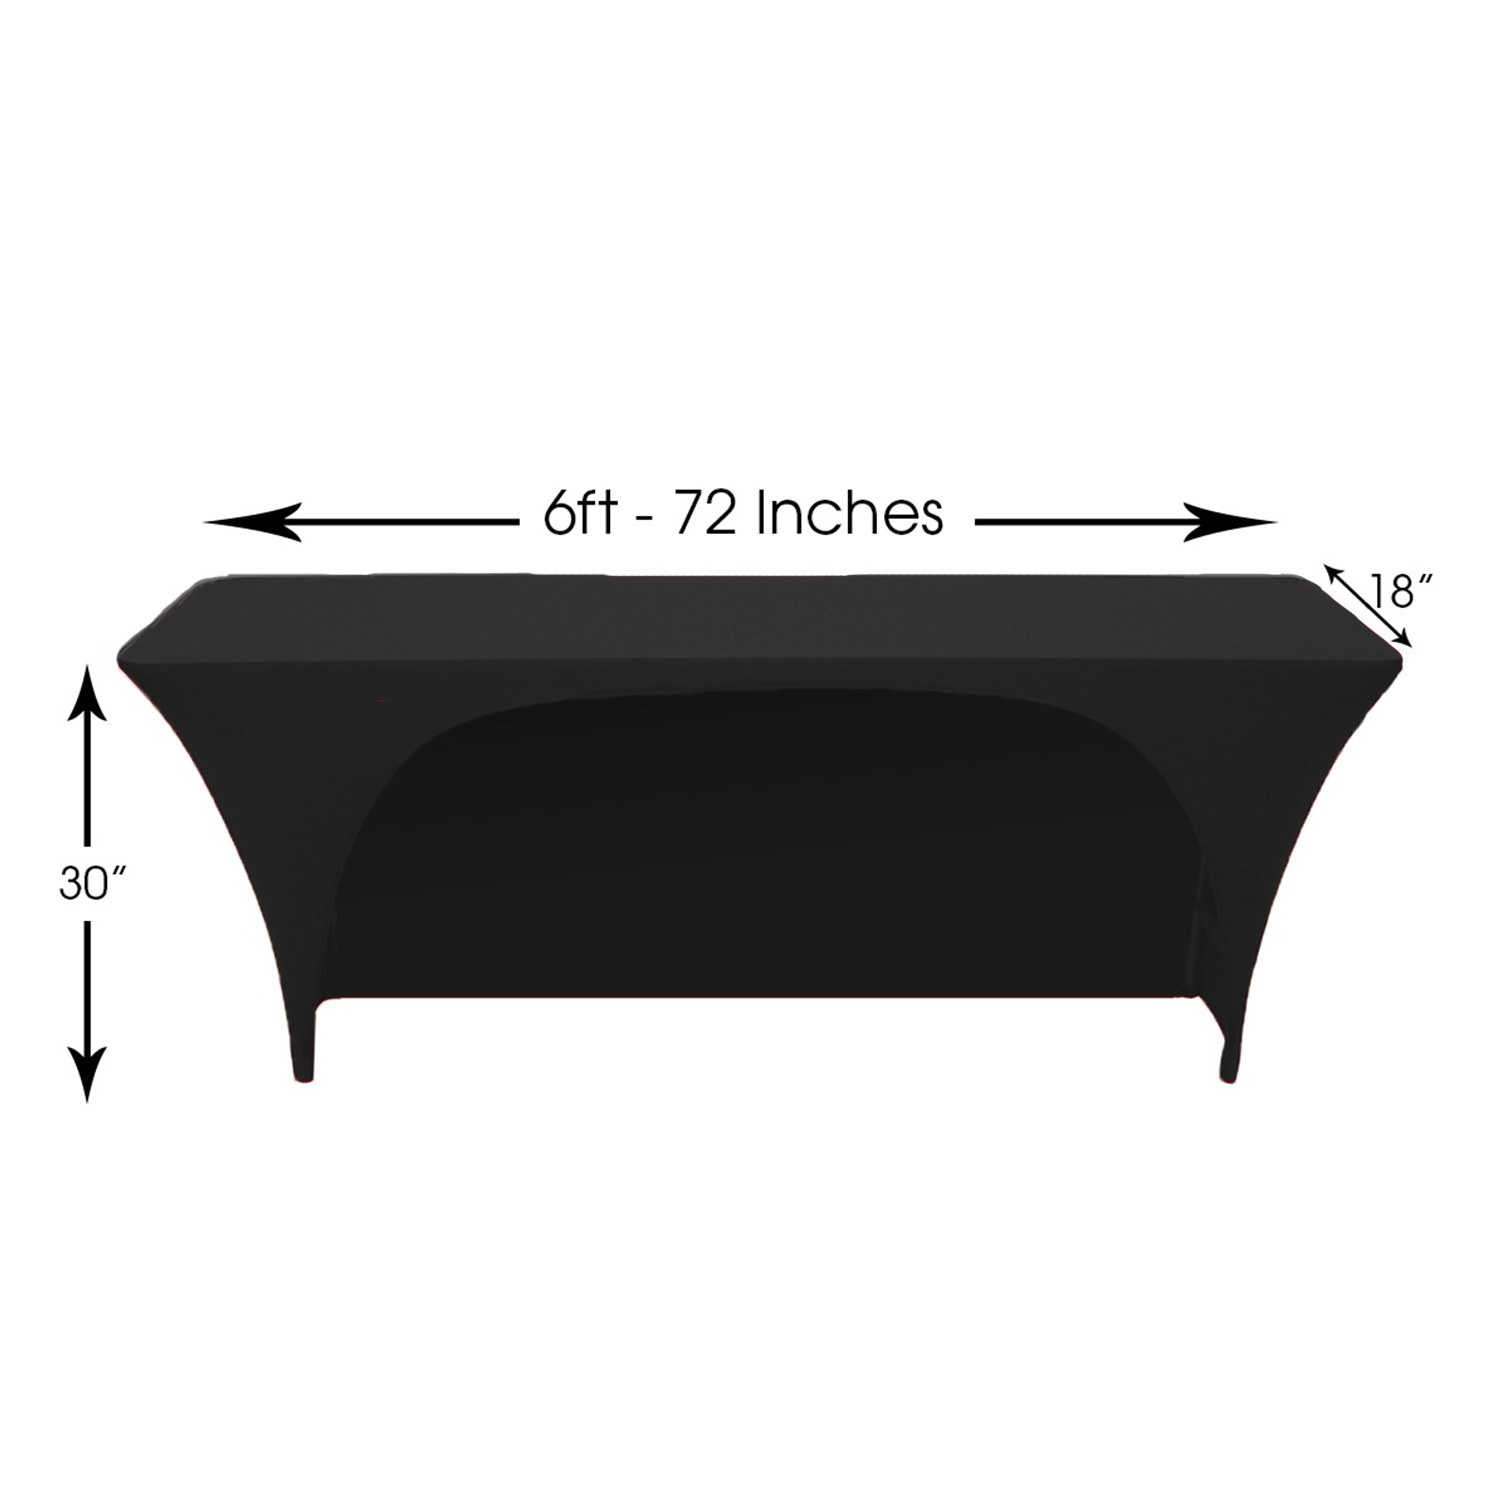 stretch-spandex-6ft-18-inches-open-back-rectangular-table-covers-black-dimensions-no-arch.jpg